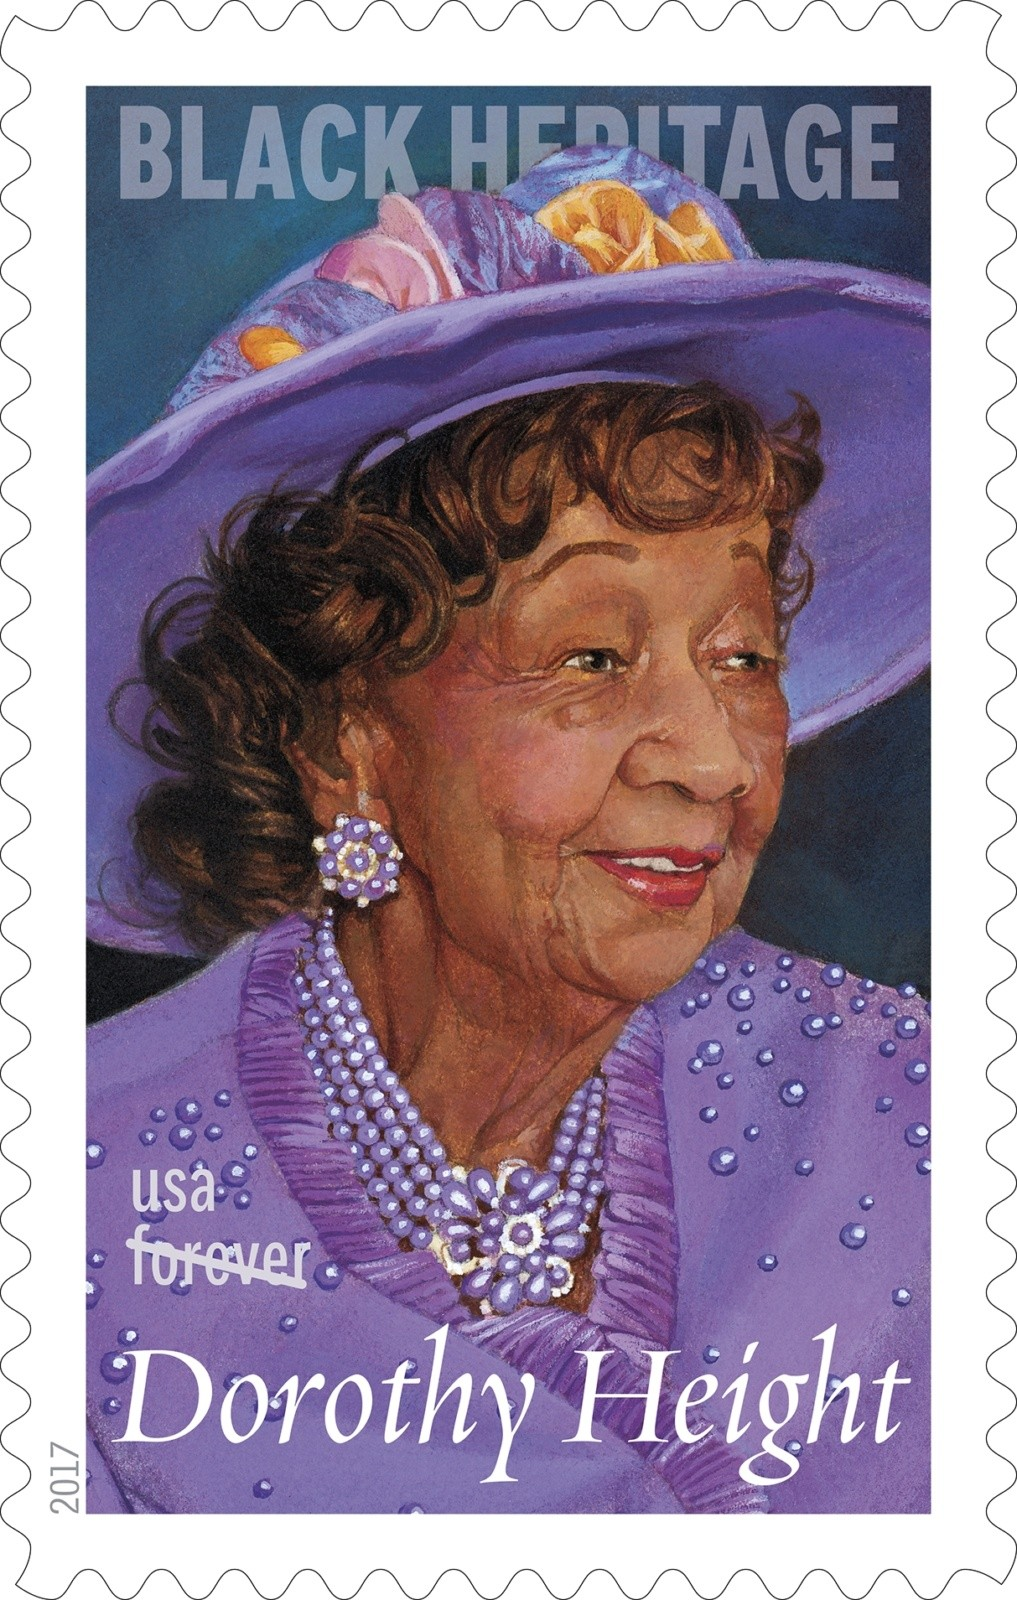 Dorothy Height Honored On U.S. Postal Stamp